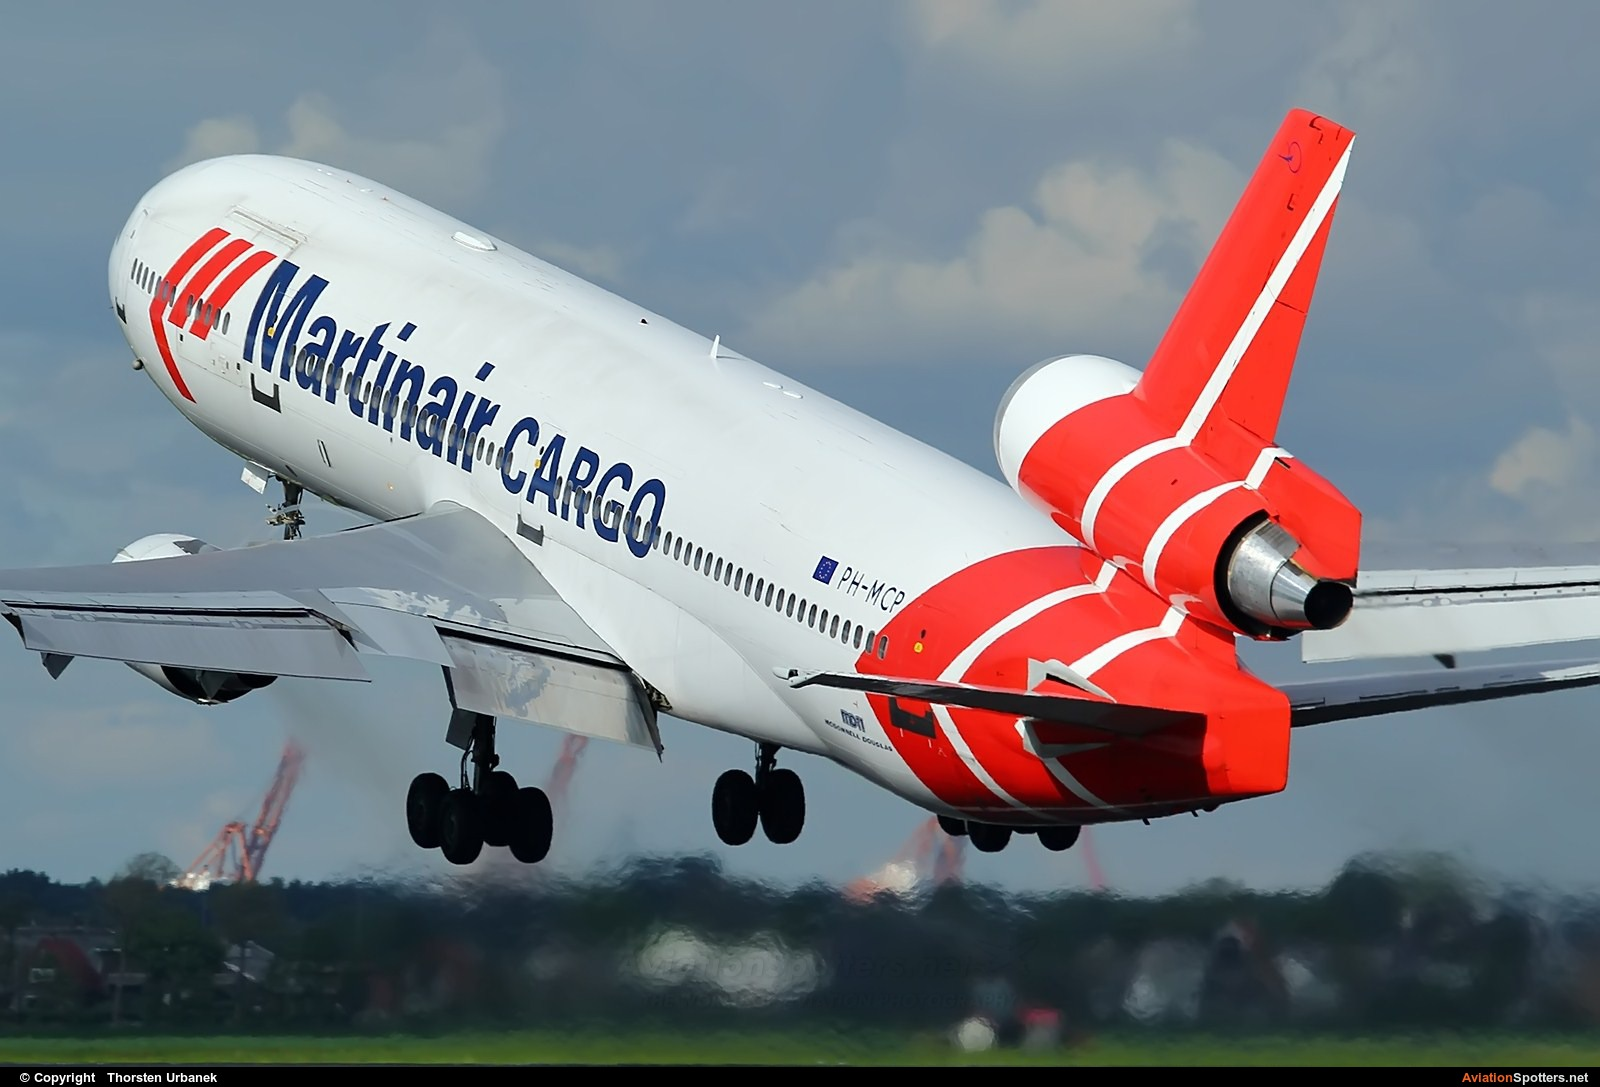 Martinair Cargo  -  MD-11F  (PH-MCP) By Thorsten Urbanek (toto1973)